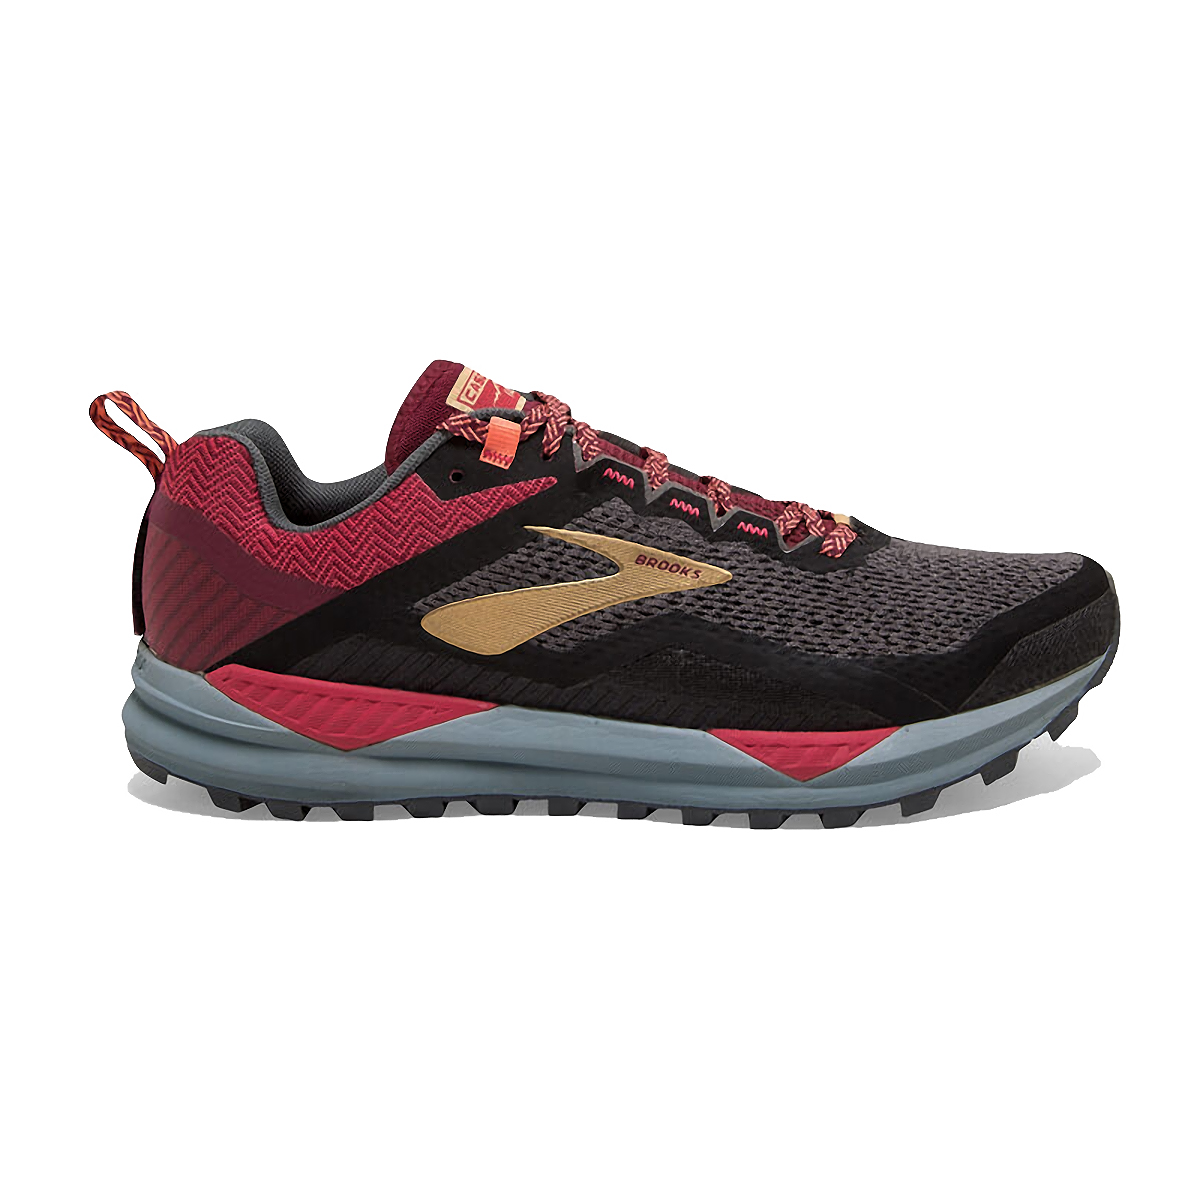 Women's Brooks Cascadia 14 Trail Running Shoe - Color: Black/Rumba Red - Size: 5 - Width: Regular, Black/Rumba Red, large, image 1